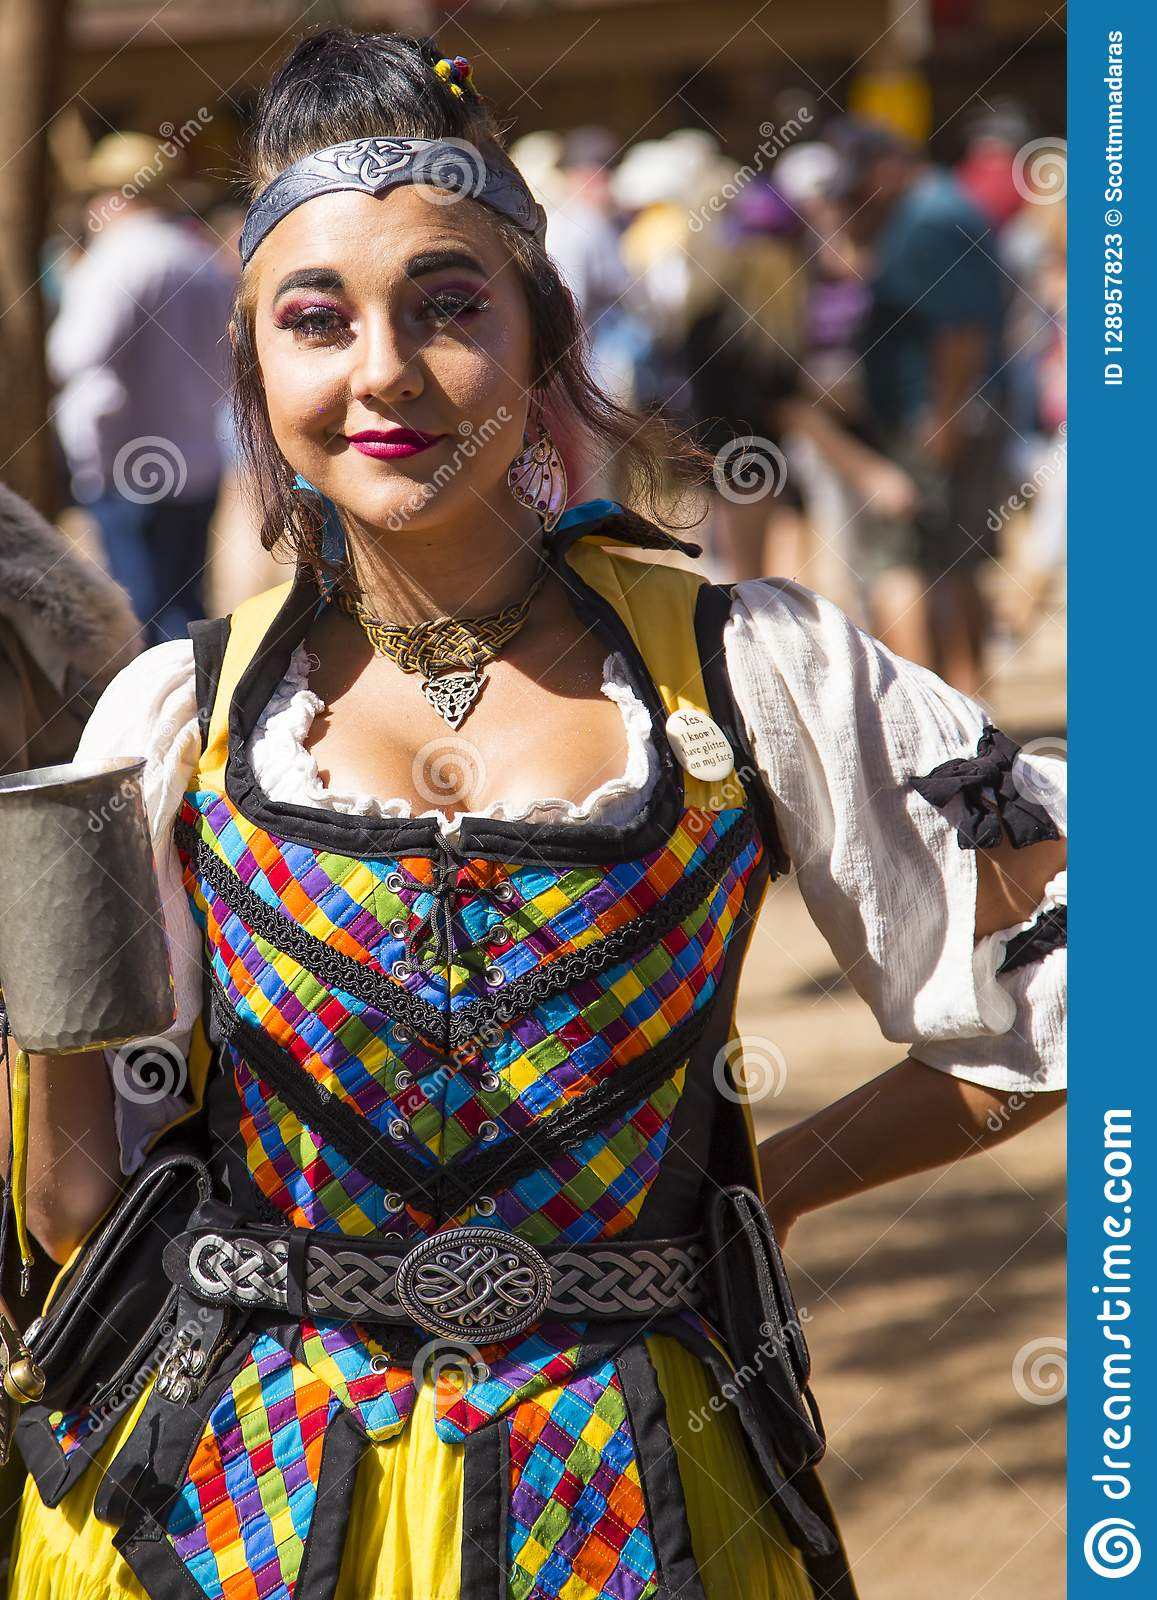 Woman In Period Costume At Renaissance Festival Editorial